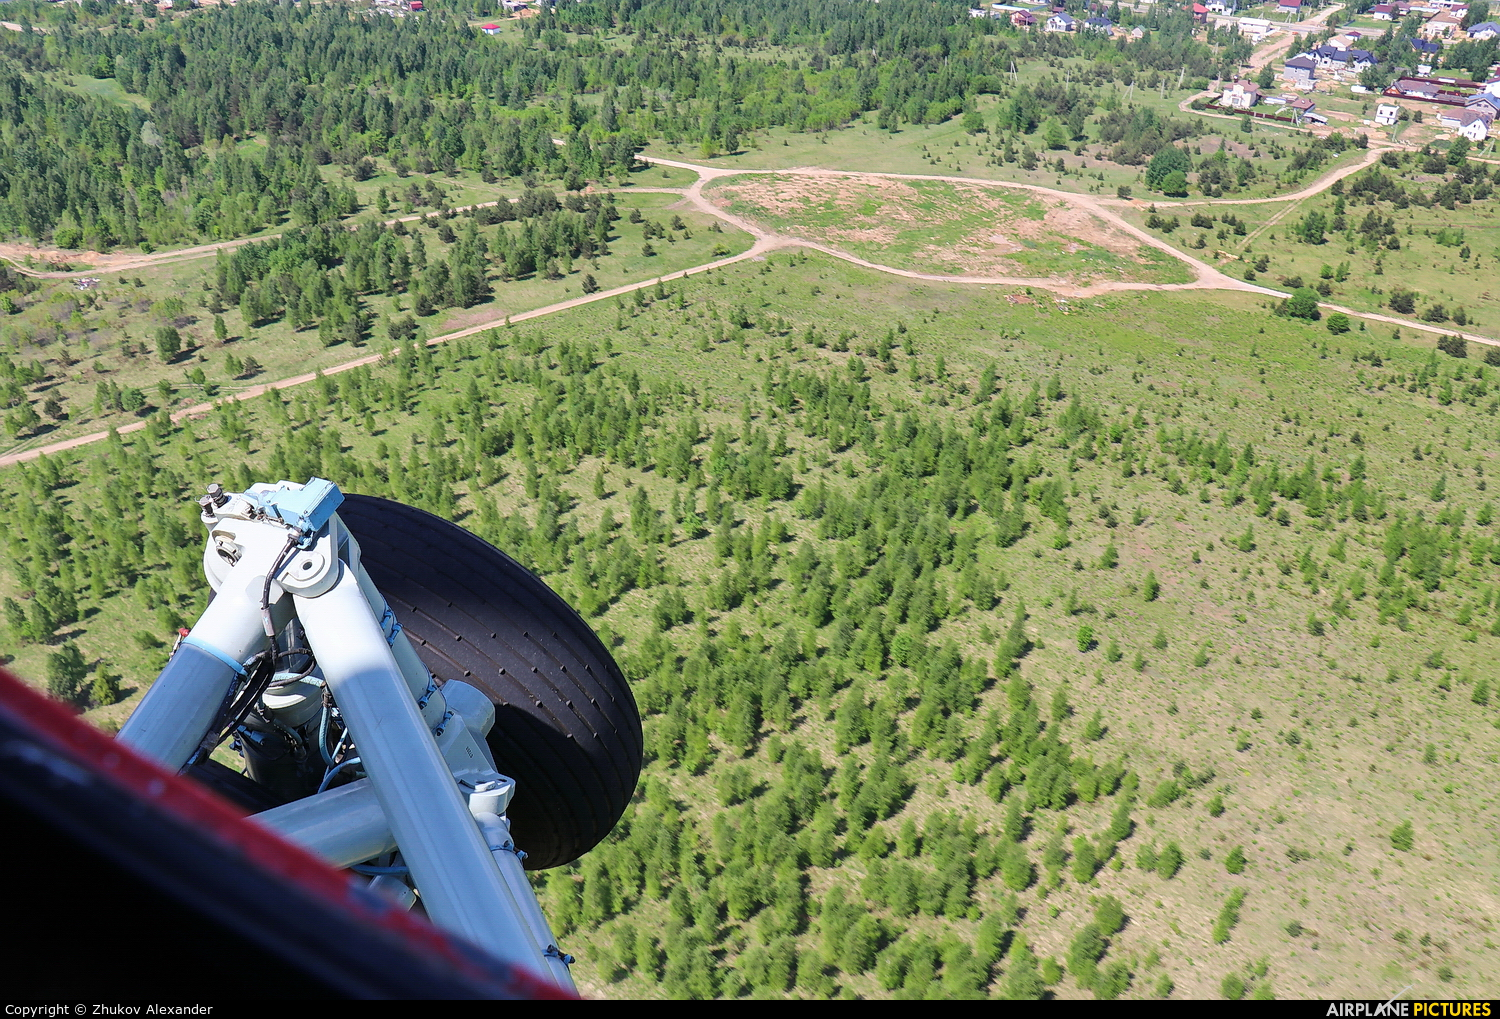 Belarus - Ministry for Emergency Situations EW-300TF aircraft at In Flight - Belarus